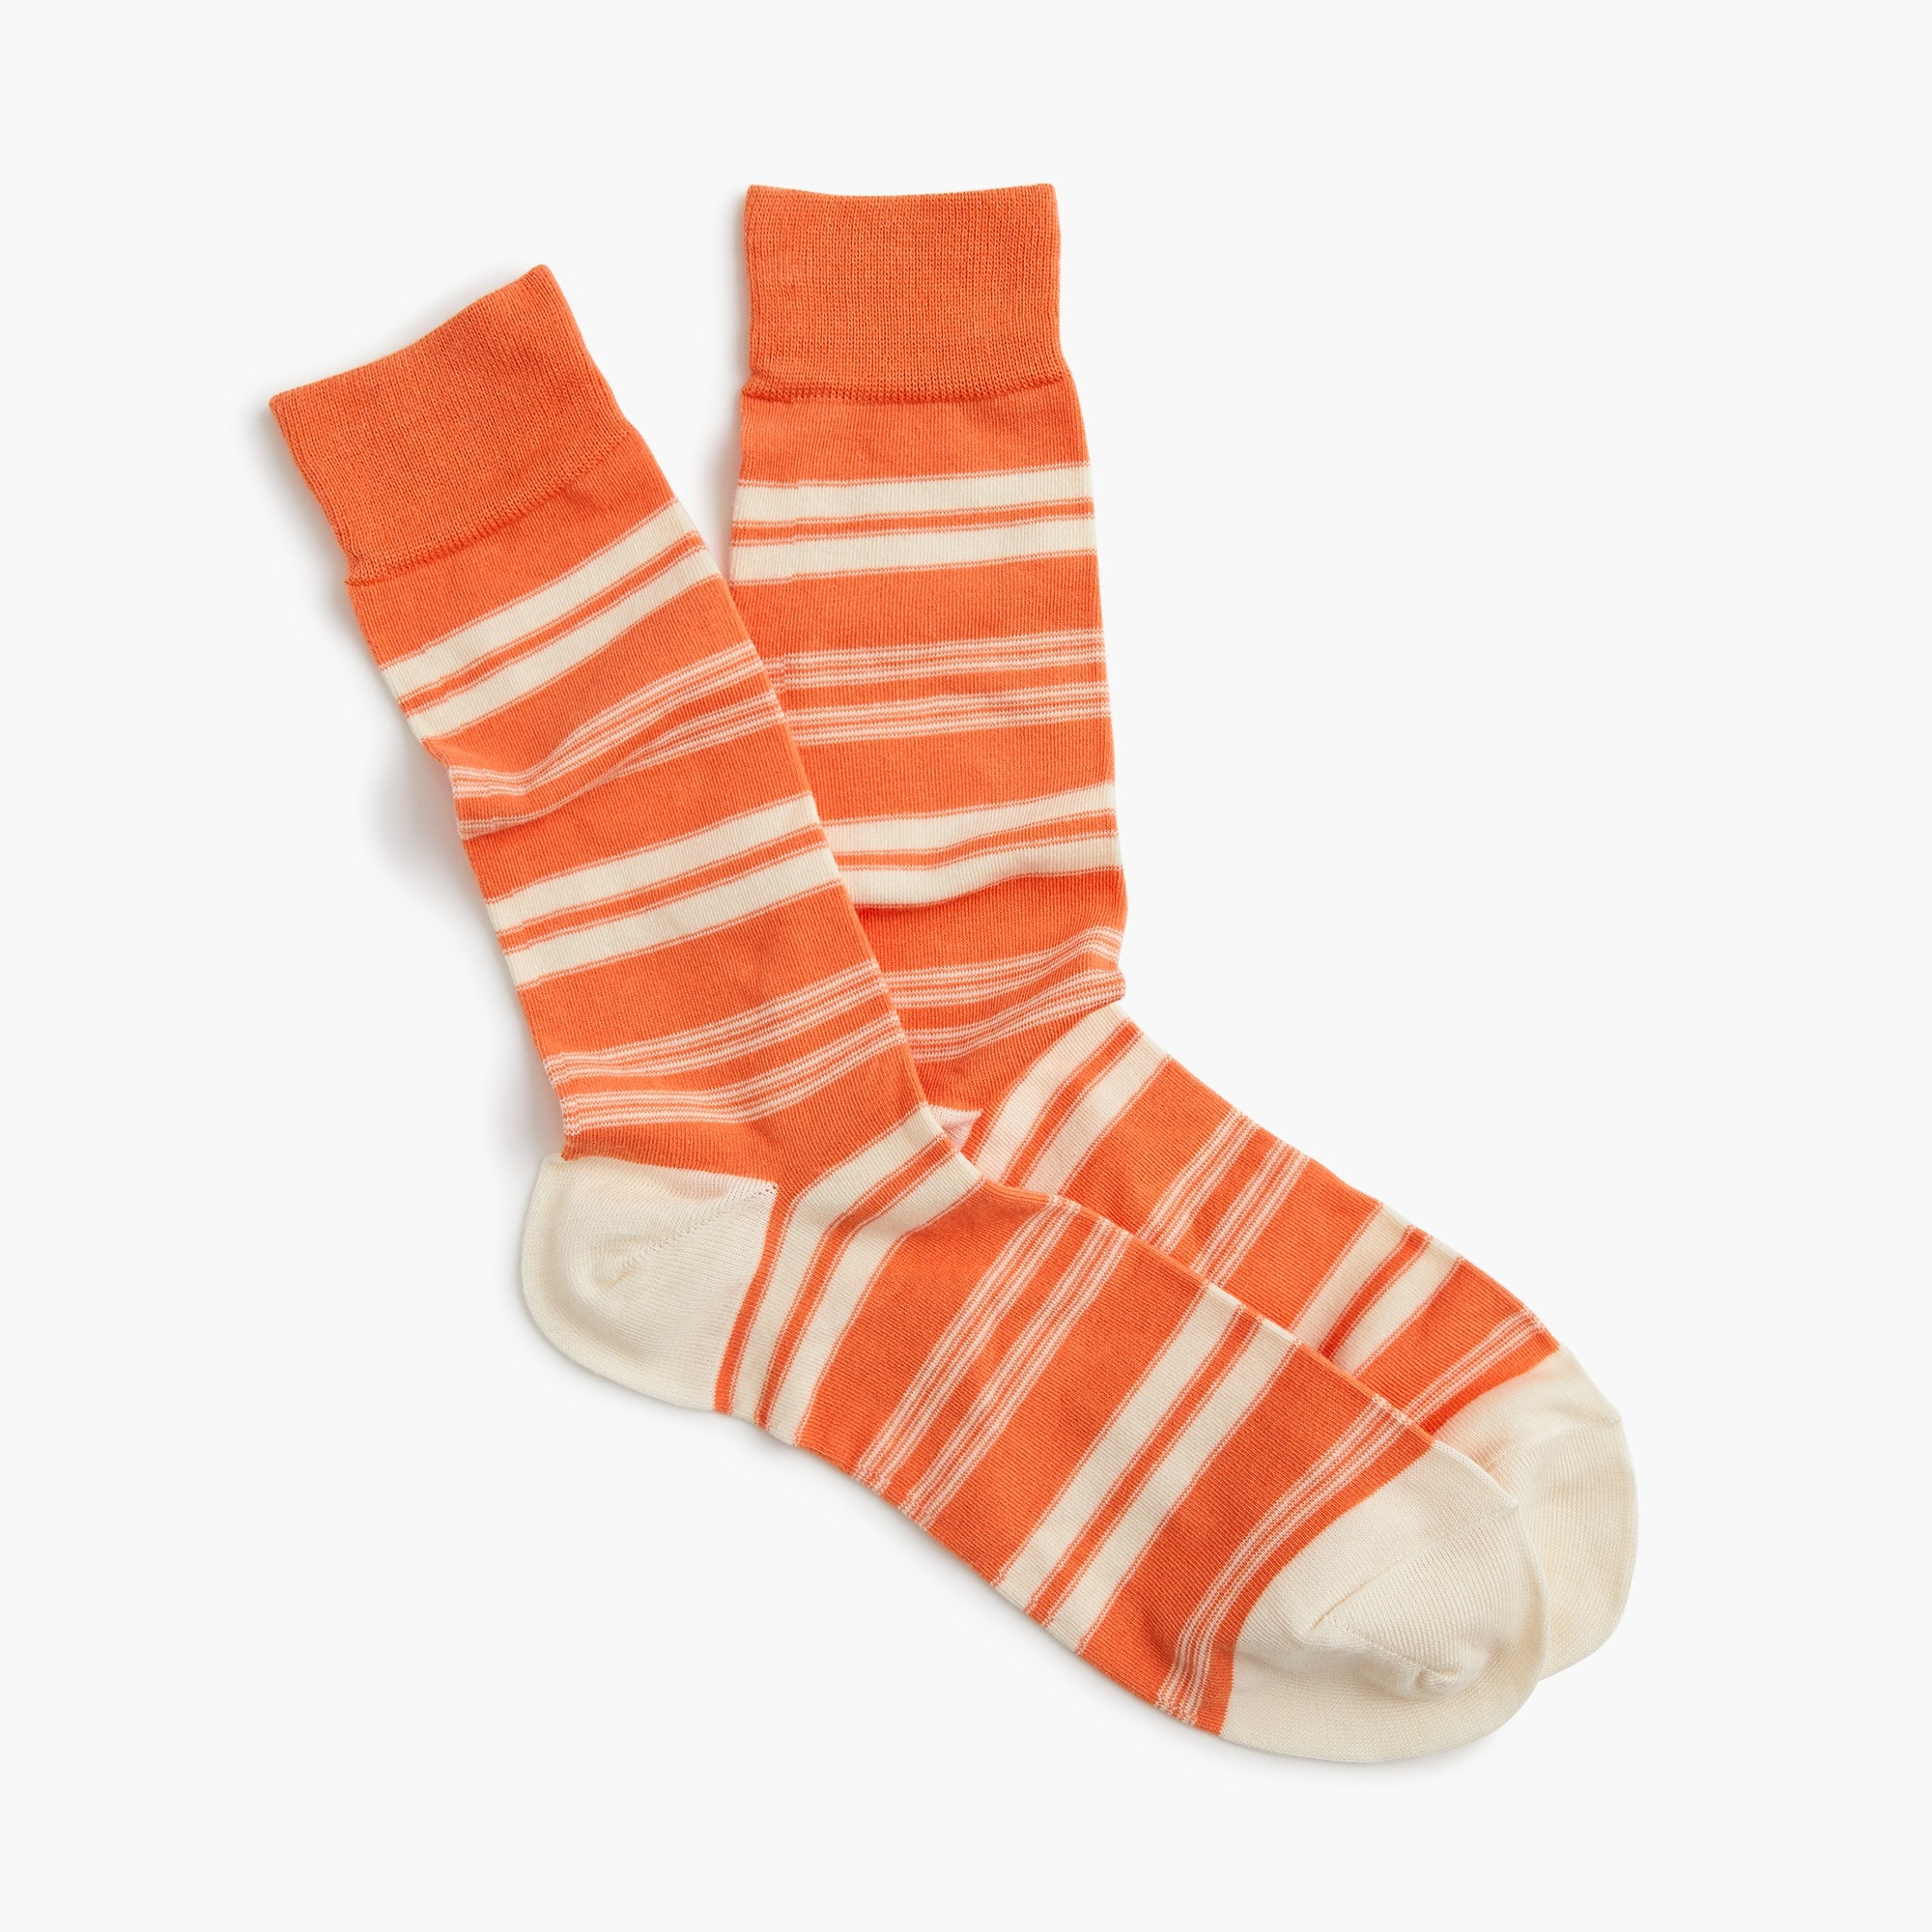 mens Mixed stripe socks